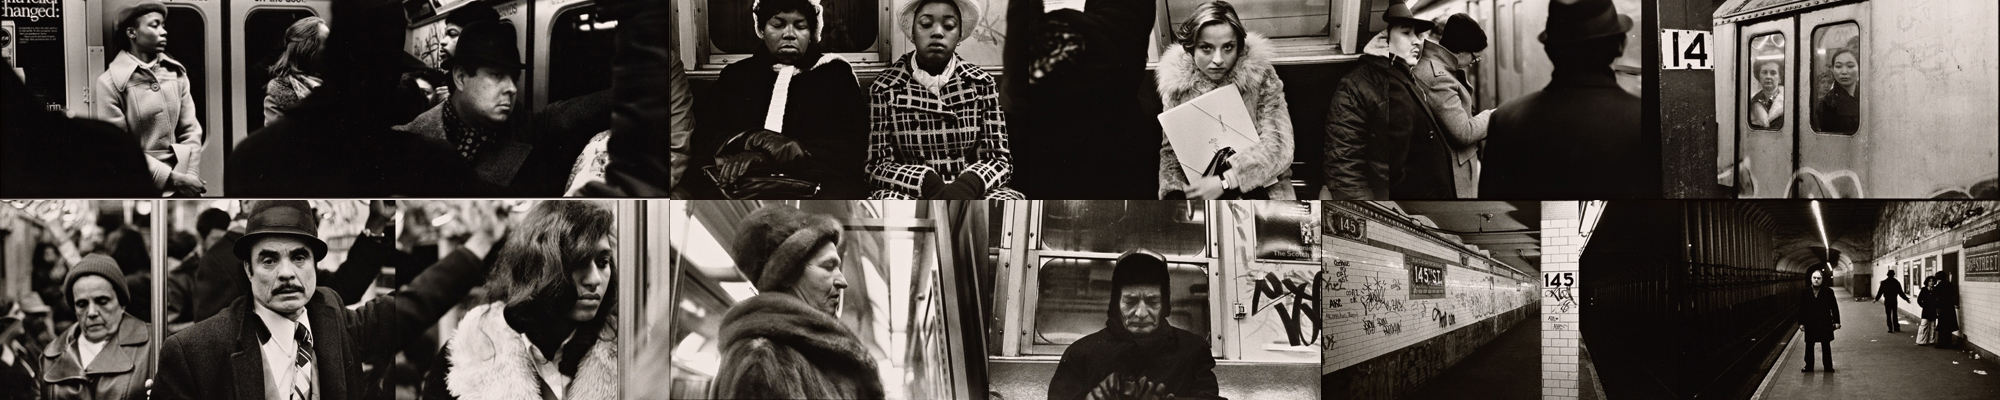 vintage pics of people on New York subway